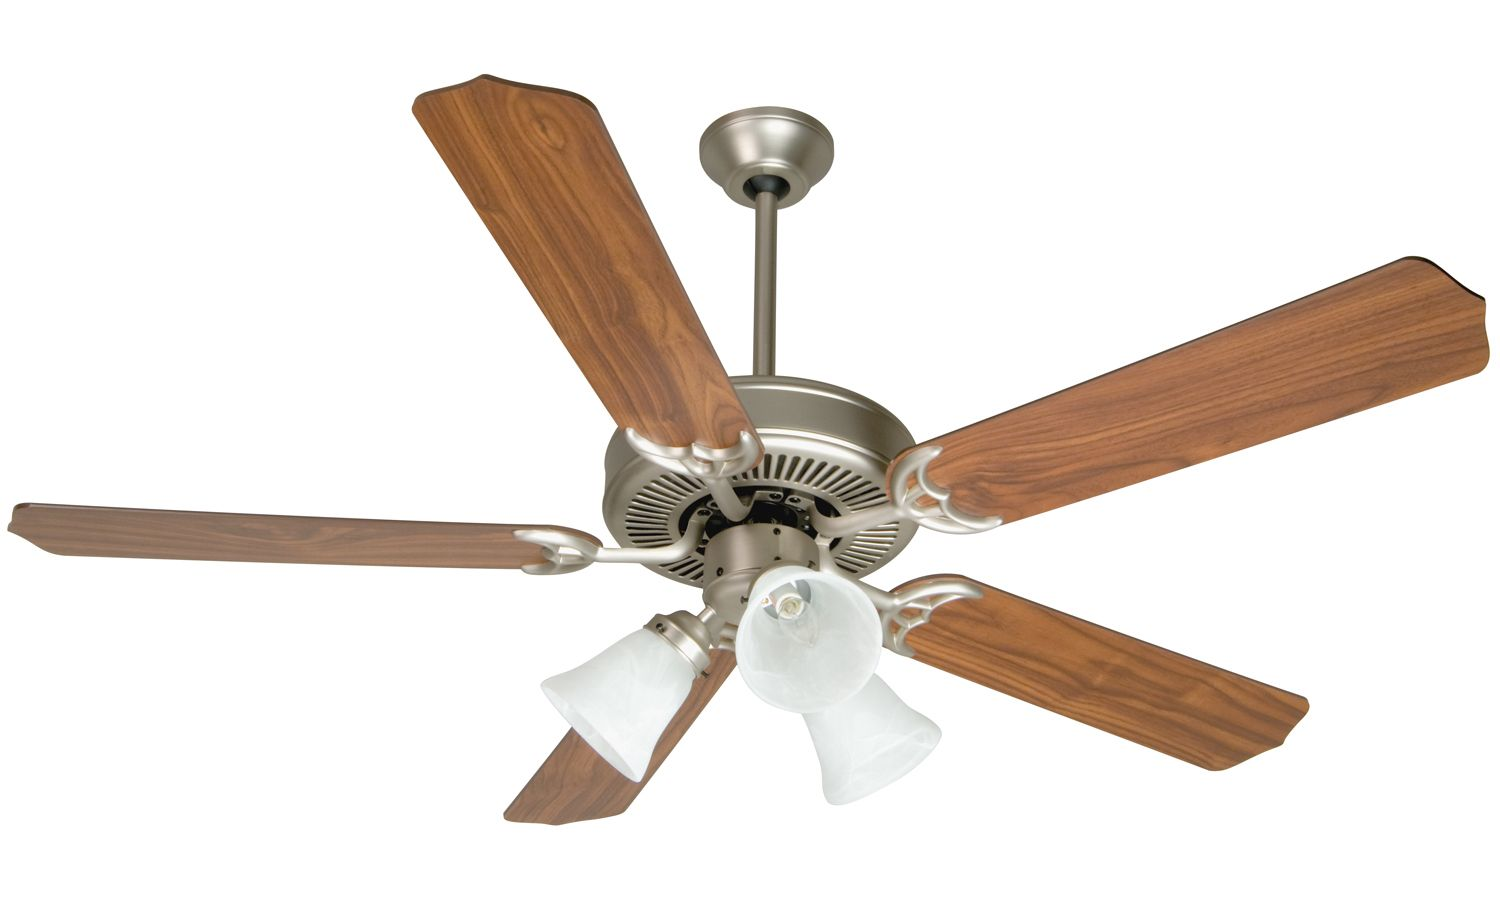 Metro Appliances And More Ceiling fan with light